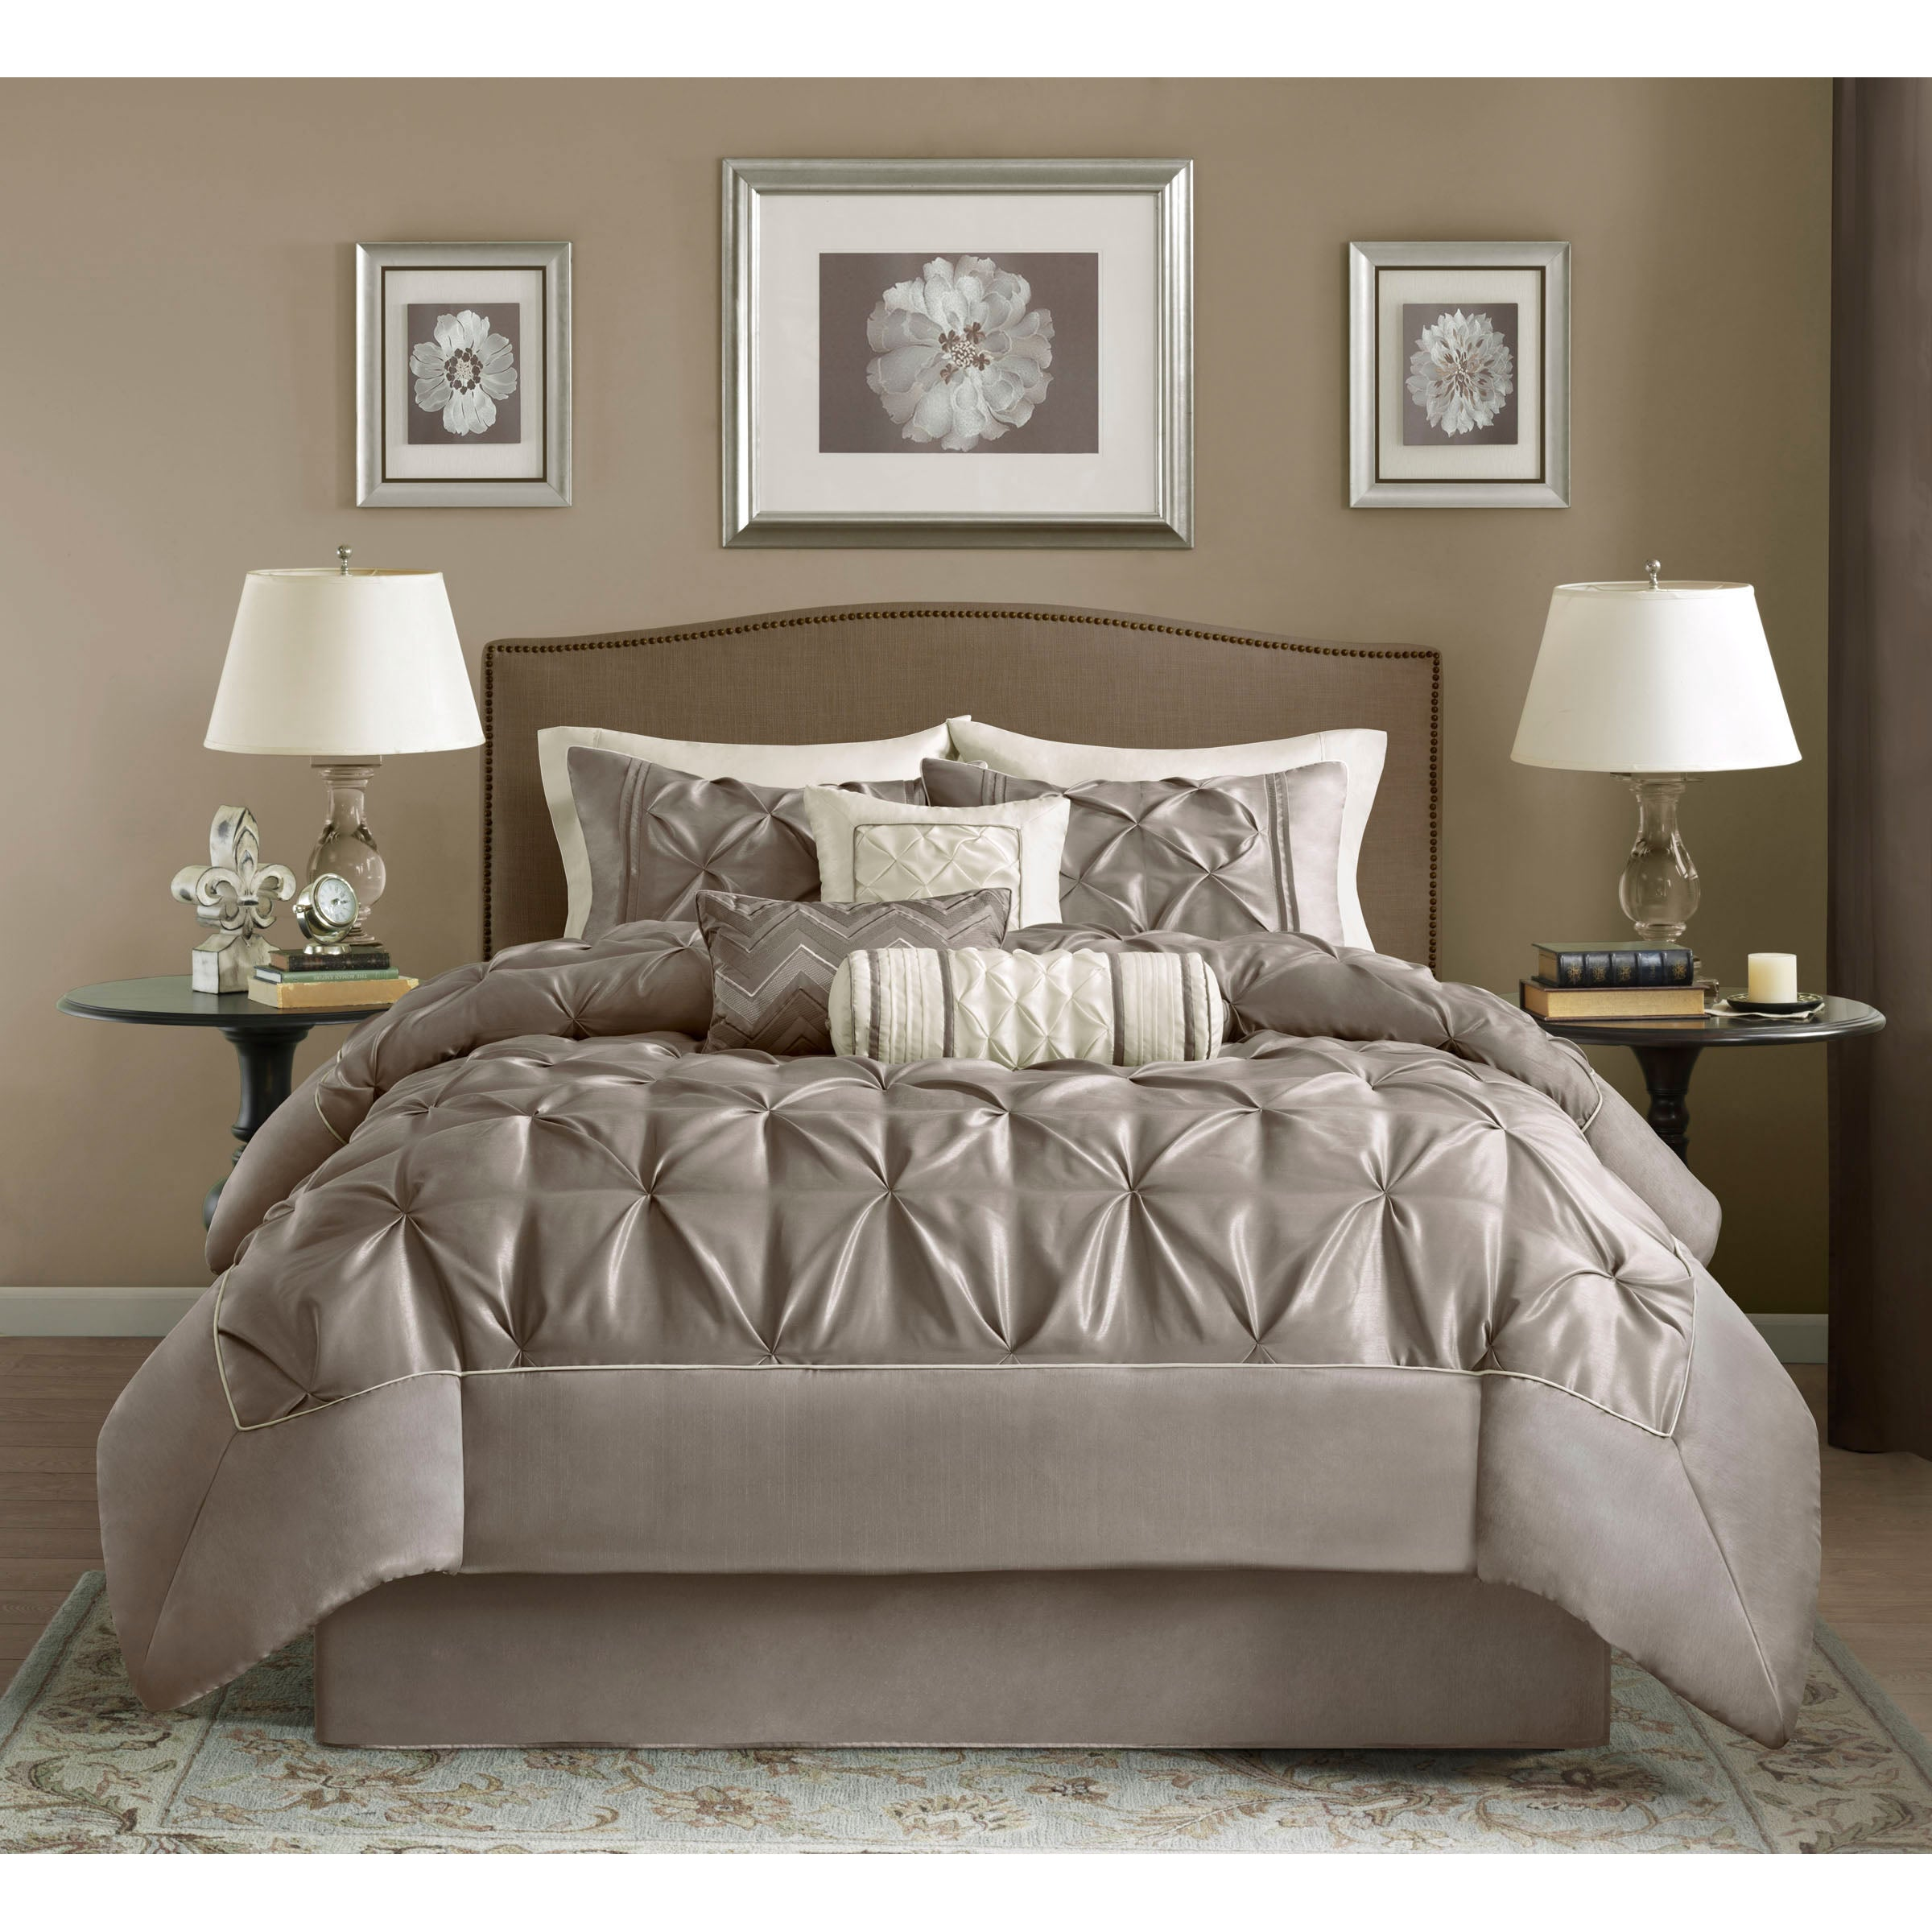 cavoy comfort amazon comforter bed com gray piece set sets b spaces full pattern tufted